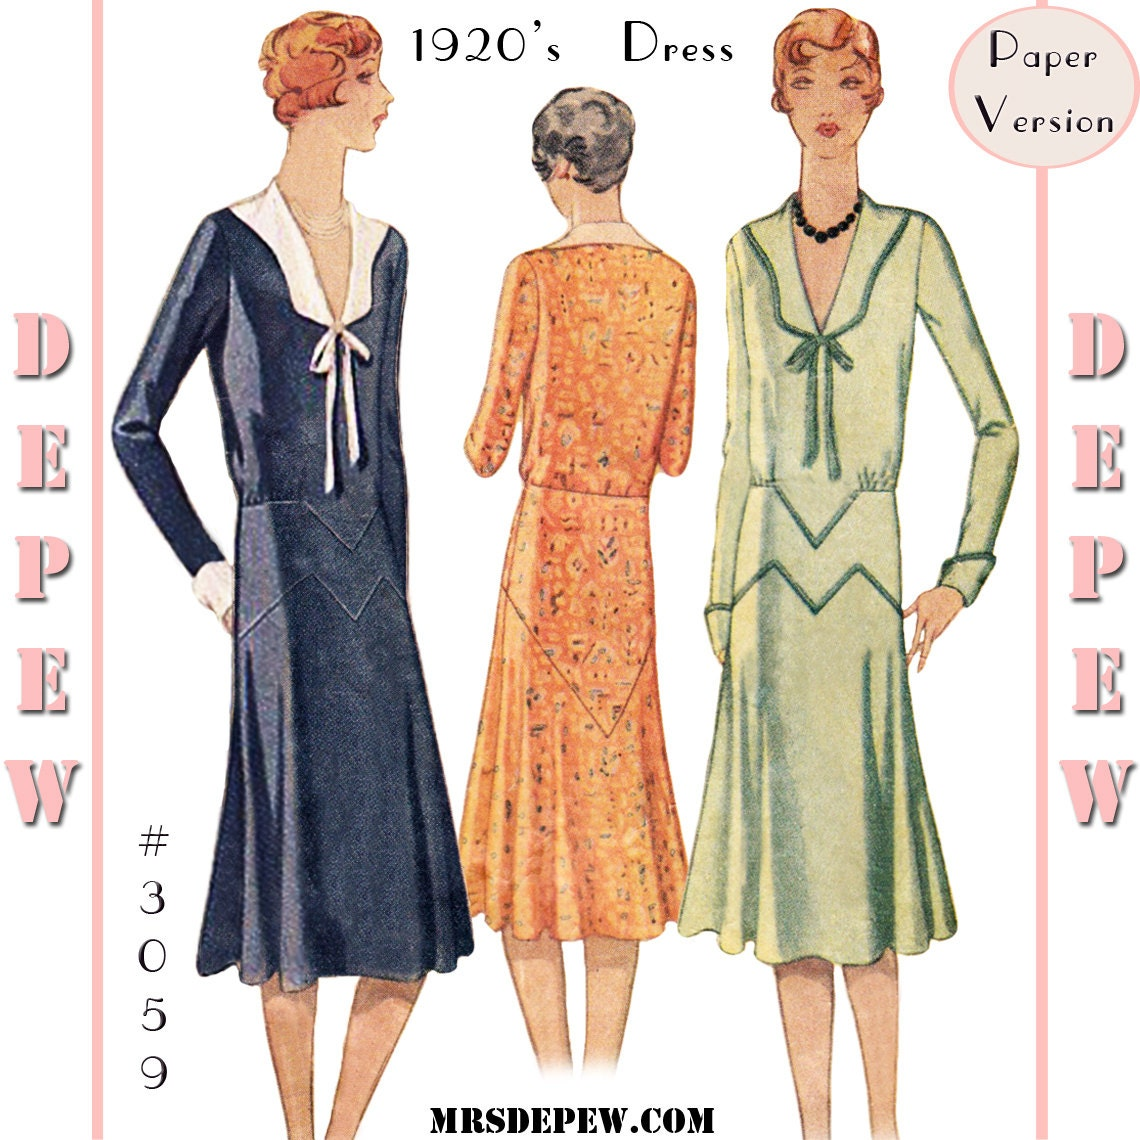 Vintage Sewing Pattern Reproduction Ladies' 1920's